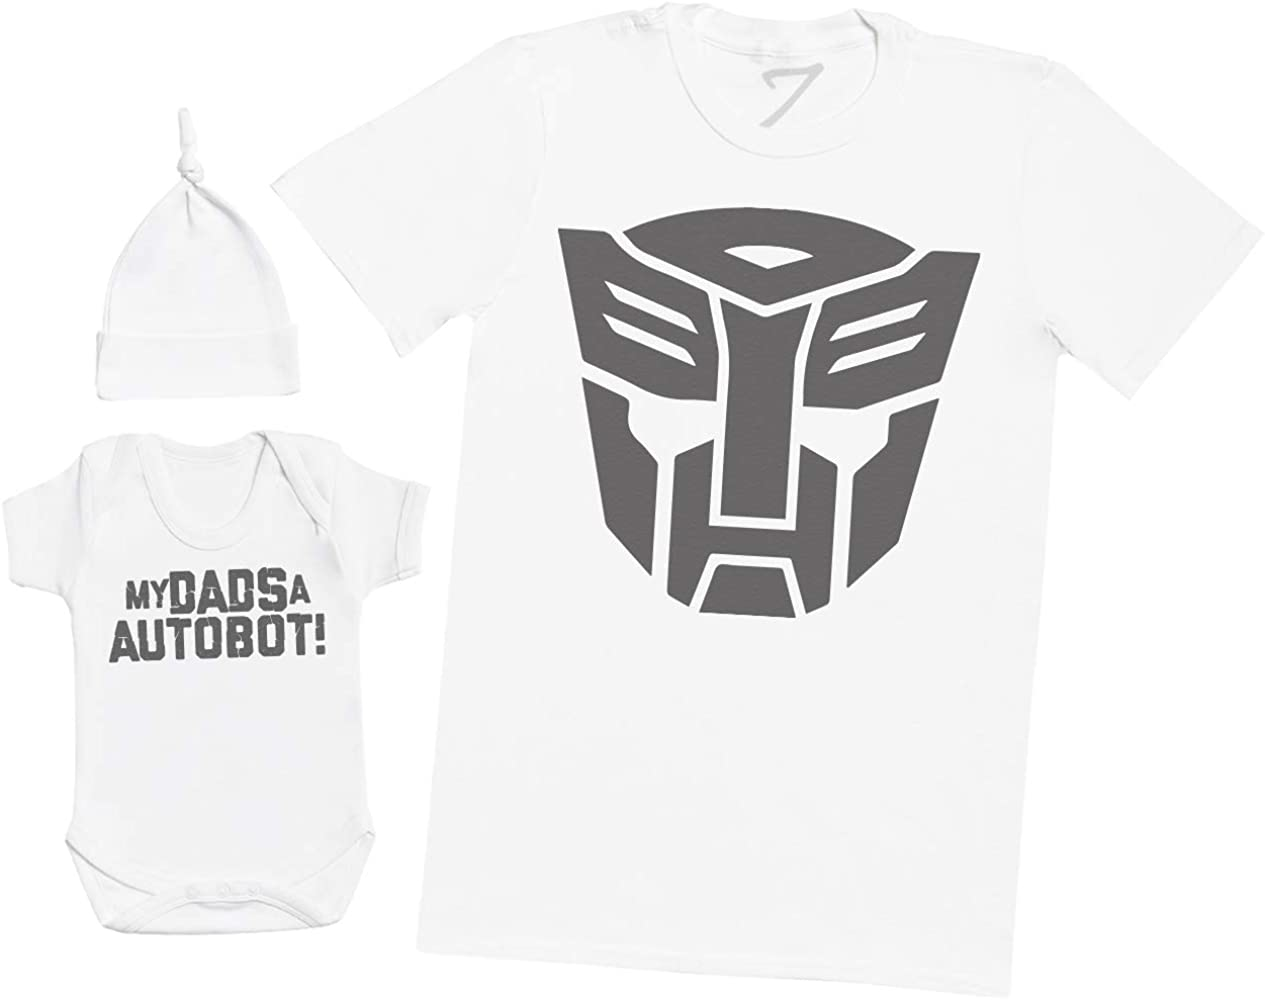 My Daddy is A Autobot! Mens T Shirt /& Baby Romper Matching Father Baby Gift Set